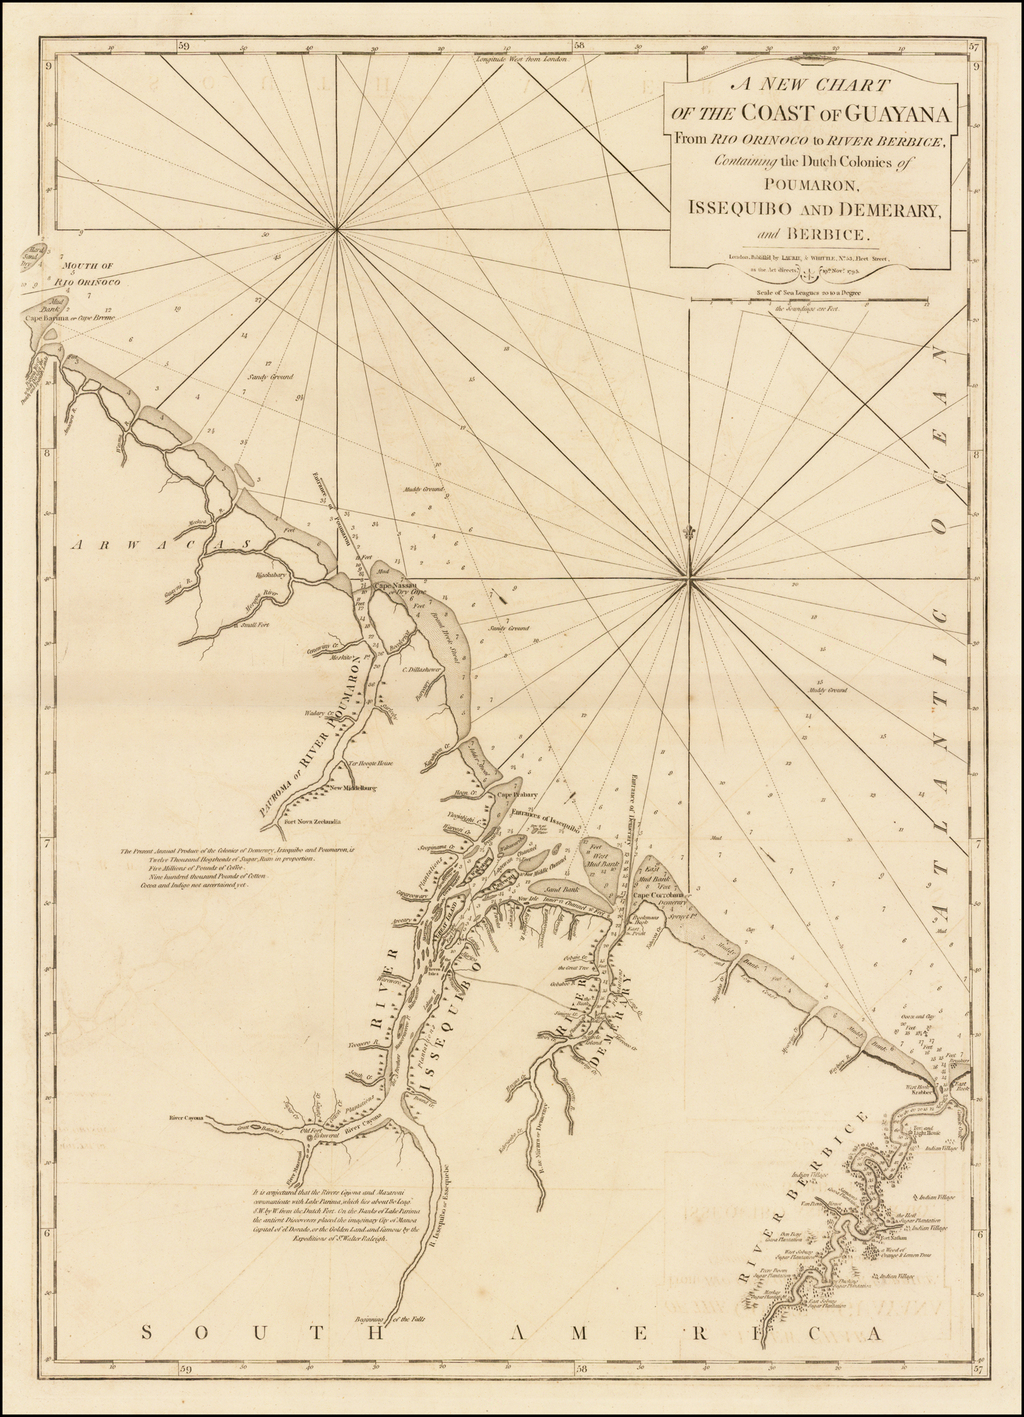 A New Chart of the Coast of Guayana From Rio Orinoco to River Berbice, Containing the Dutch Colonies of Pourmaron, Issequibo and Demerary, and Berbice . . . 1795 By Richard Holmes Laurie  &  James Whittle